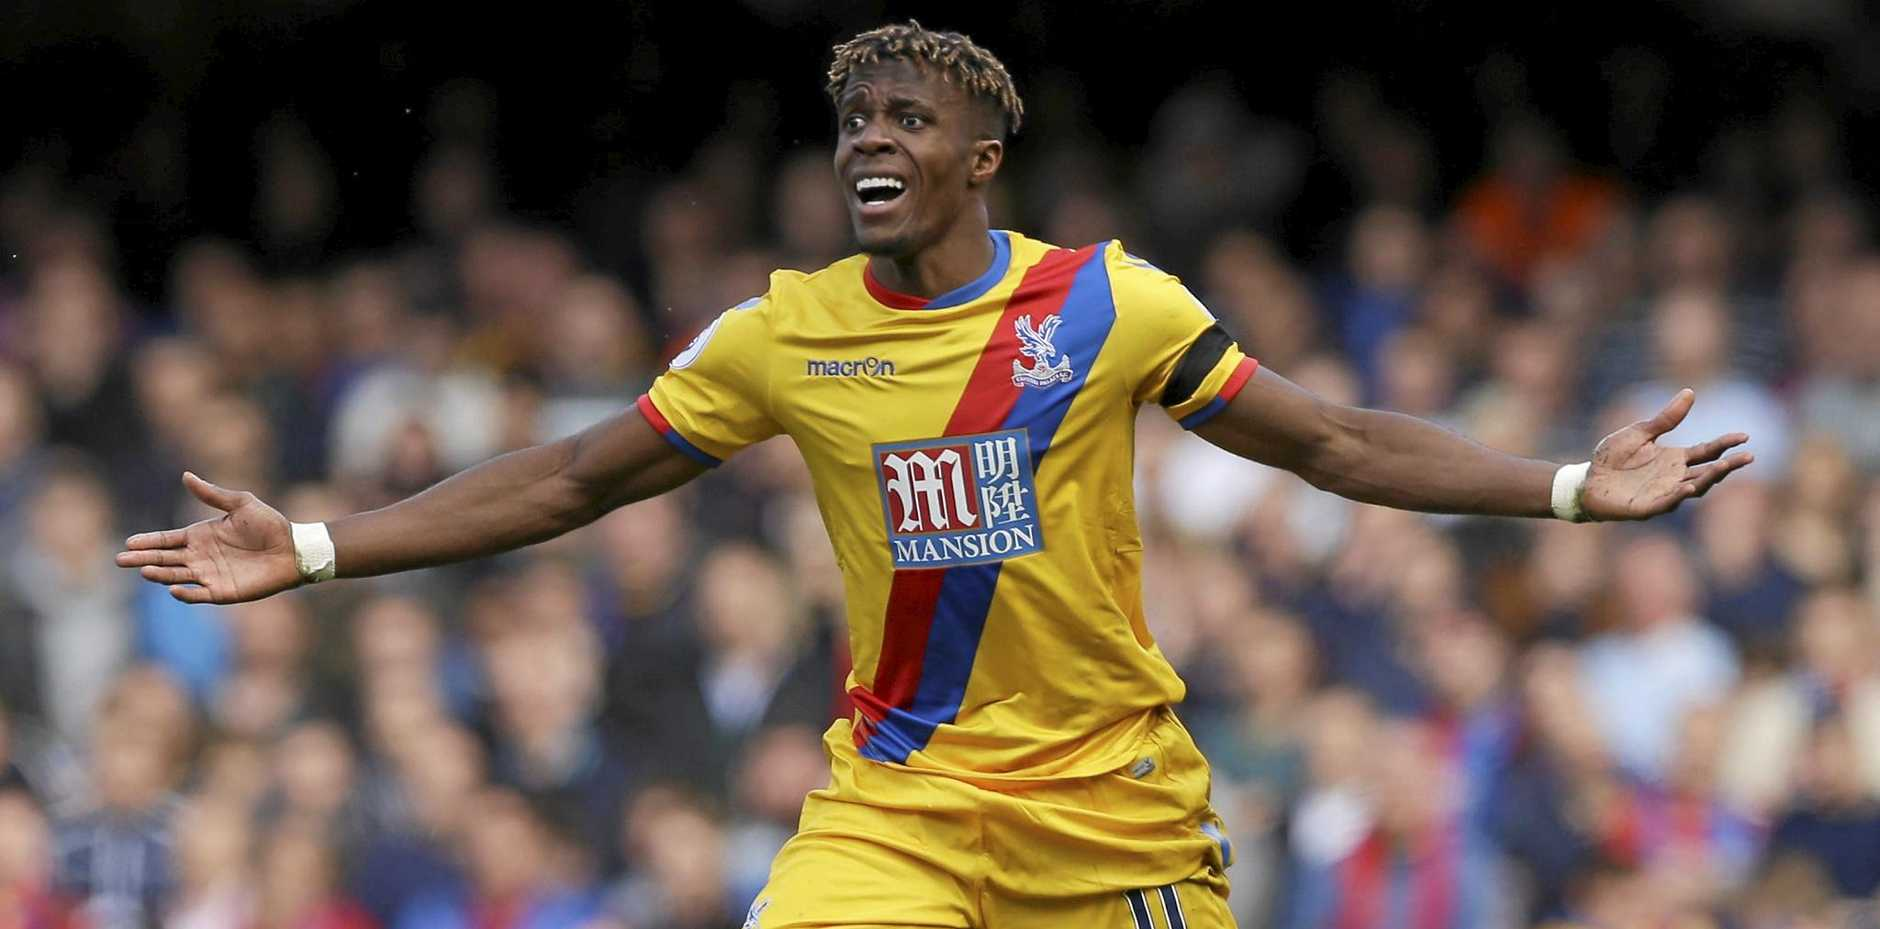 Crystal Palace's Wilfried Zaha scored the first for Crystal Palace in its 2-1 win at Chelsea.